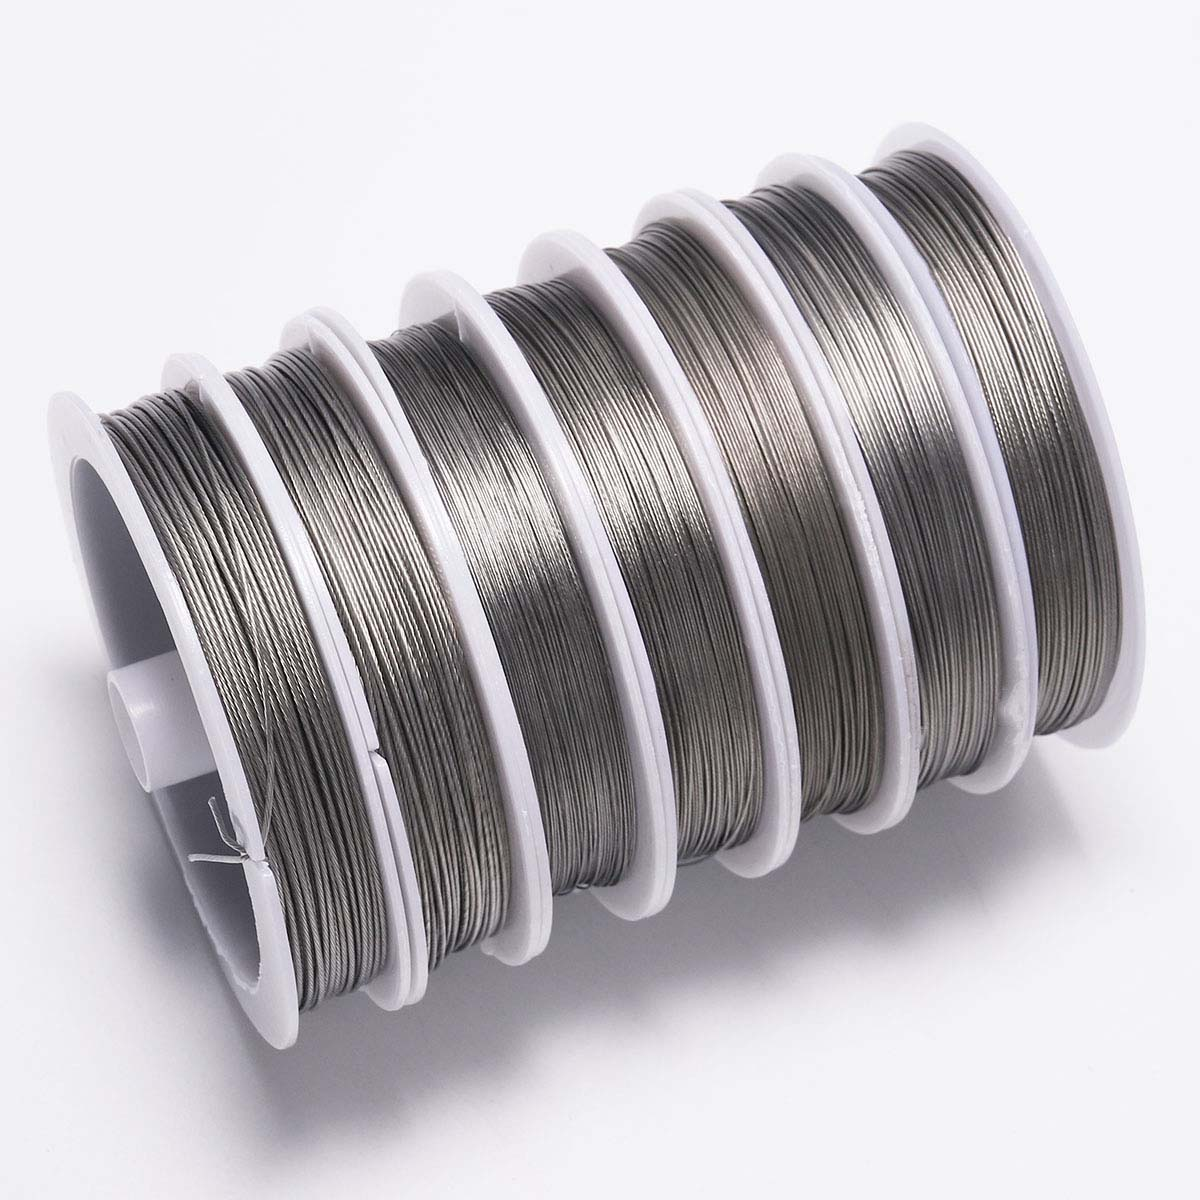 1 Roll/lot 0.3-0.8mm Anti-bite Wear Resistant Strong Line Stainless Steel Tiger Tail Beading Wire For DIY Jewelry Making Finding